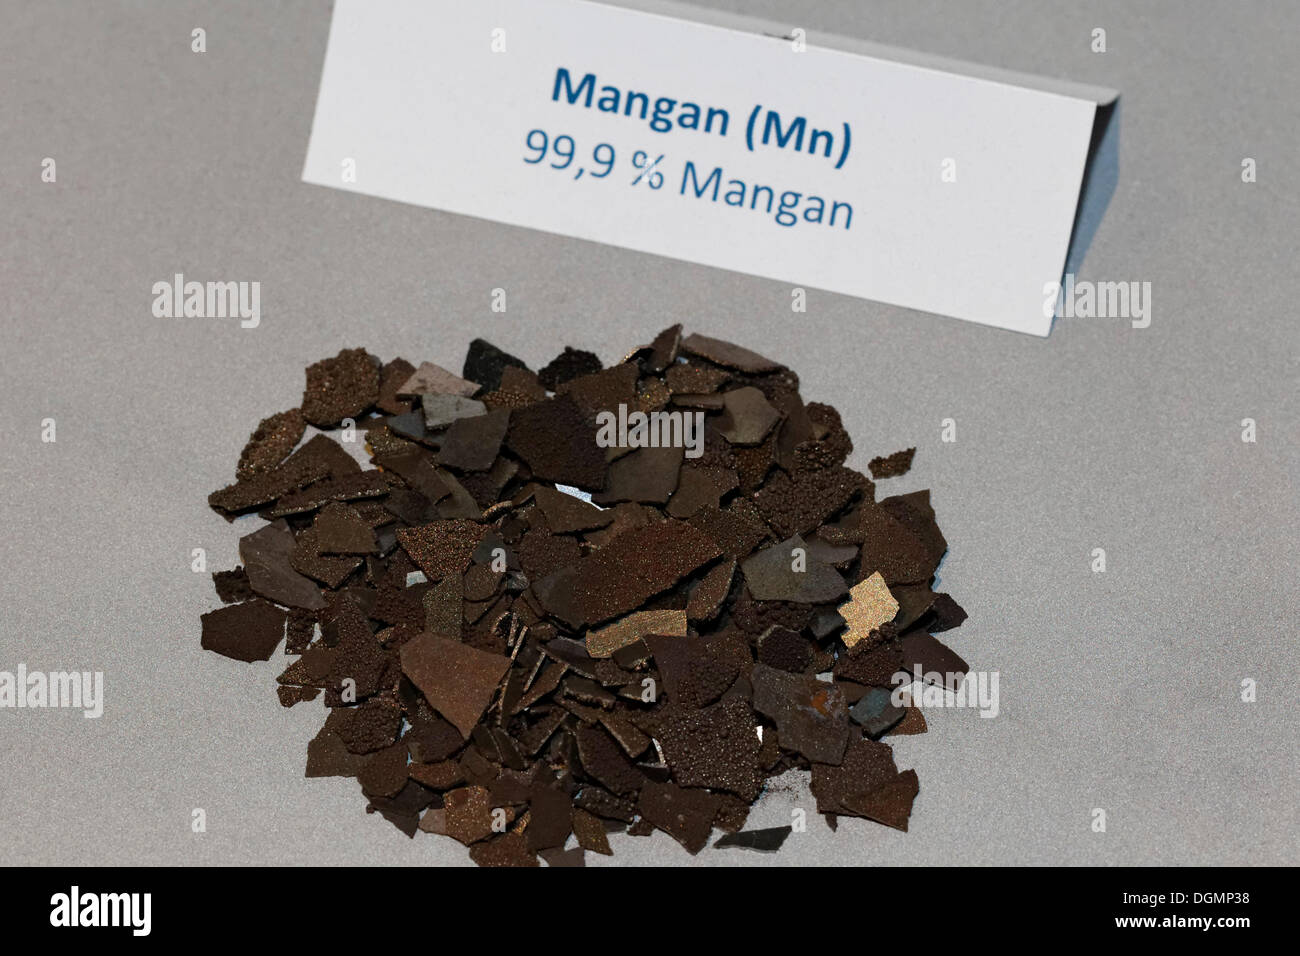 Manganese, Mn, an alloying element for steelmaking, IdeenPark 2012, Essen, Ruhr area, North Rhine-Westphalia - Stock Image